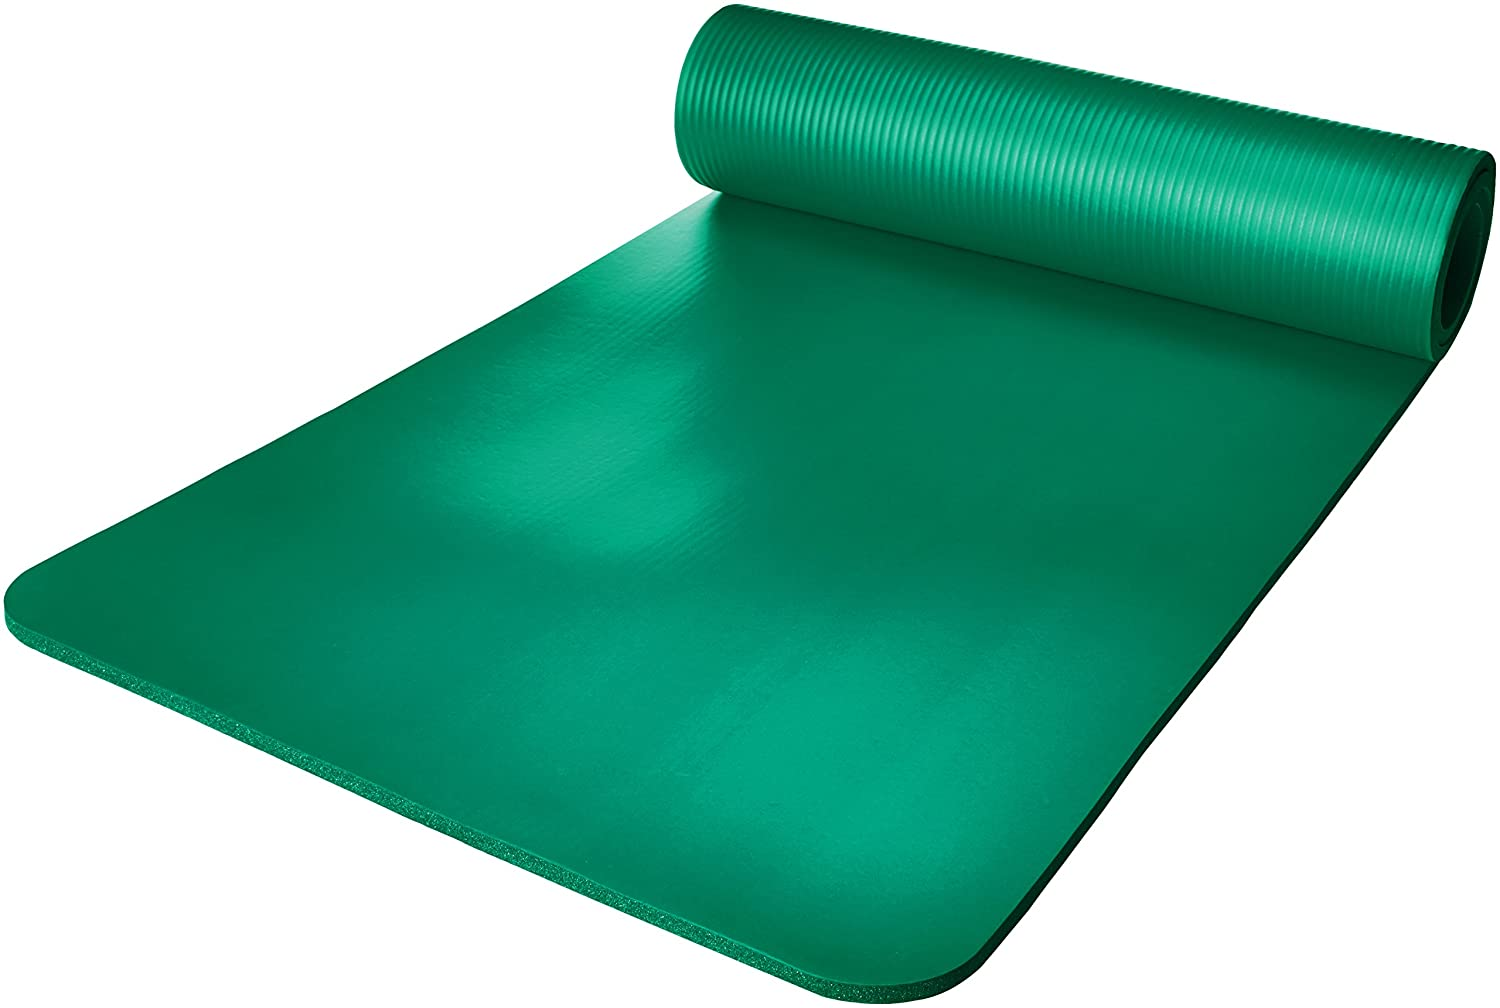 AmazonBasics 1/2-Inch Extra Thick Yoga and Exercise Mat with ...